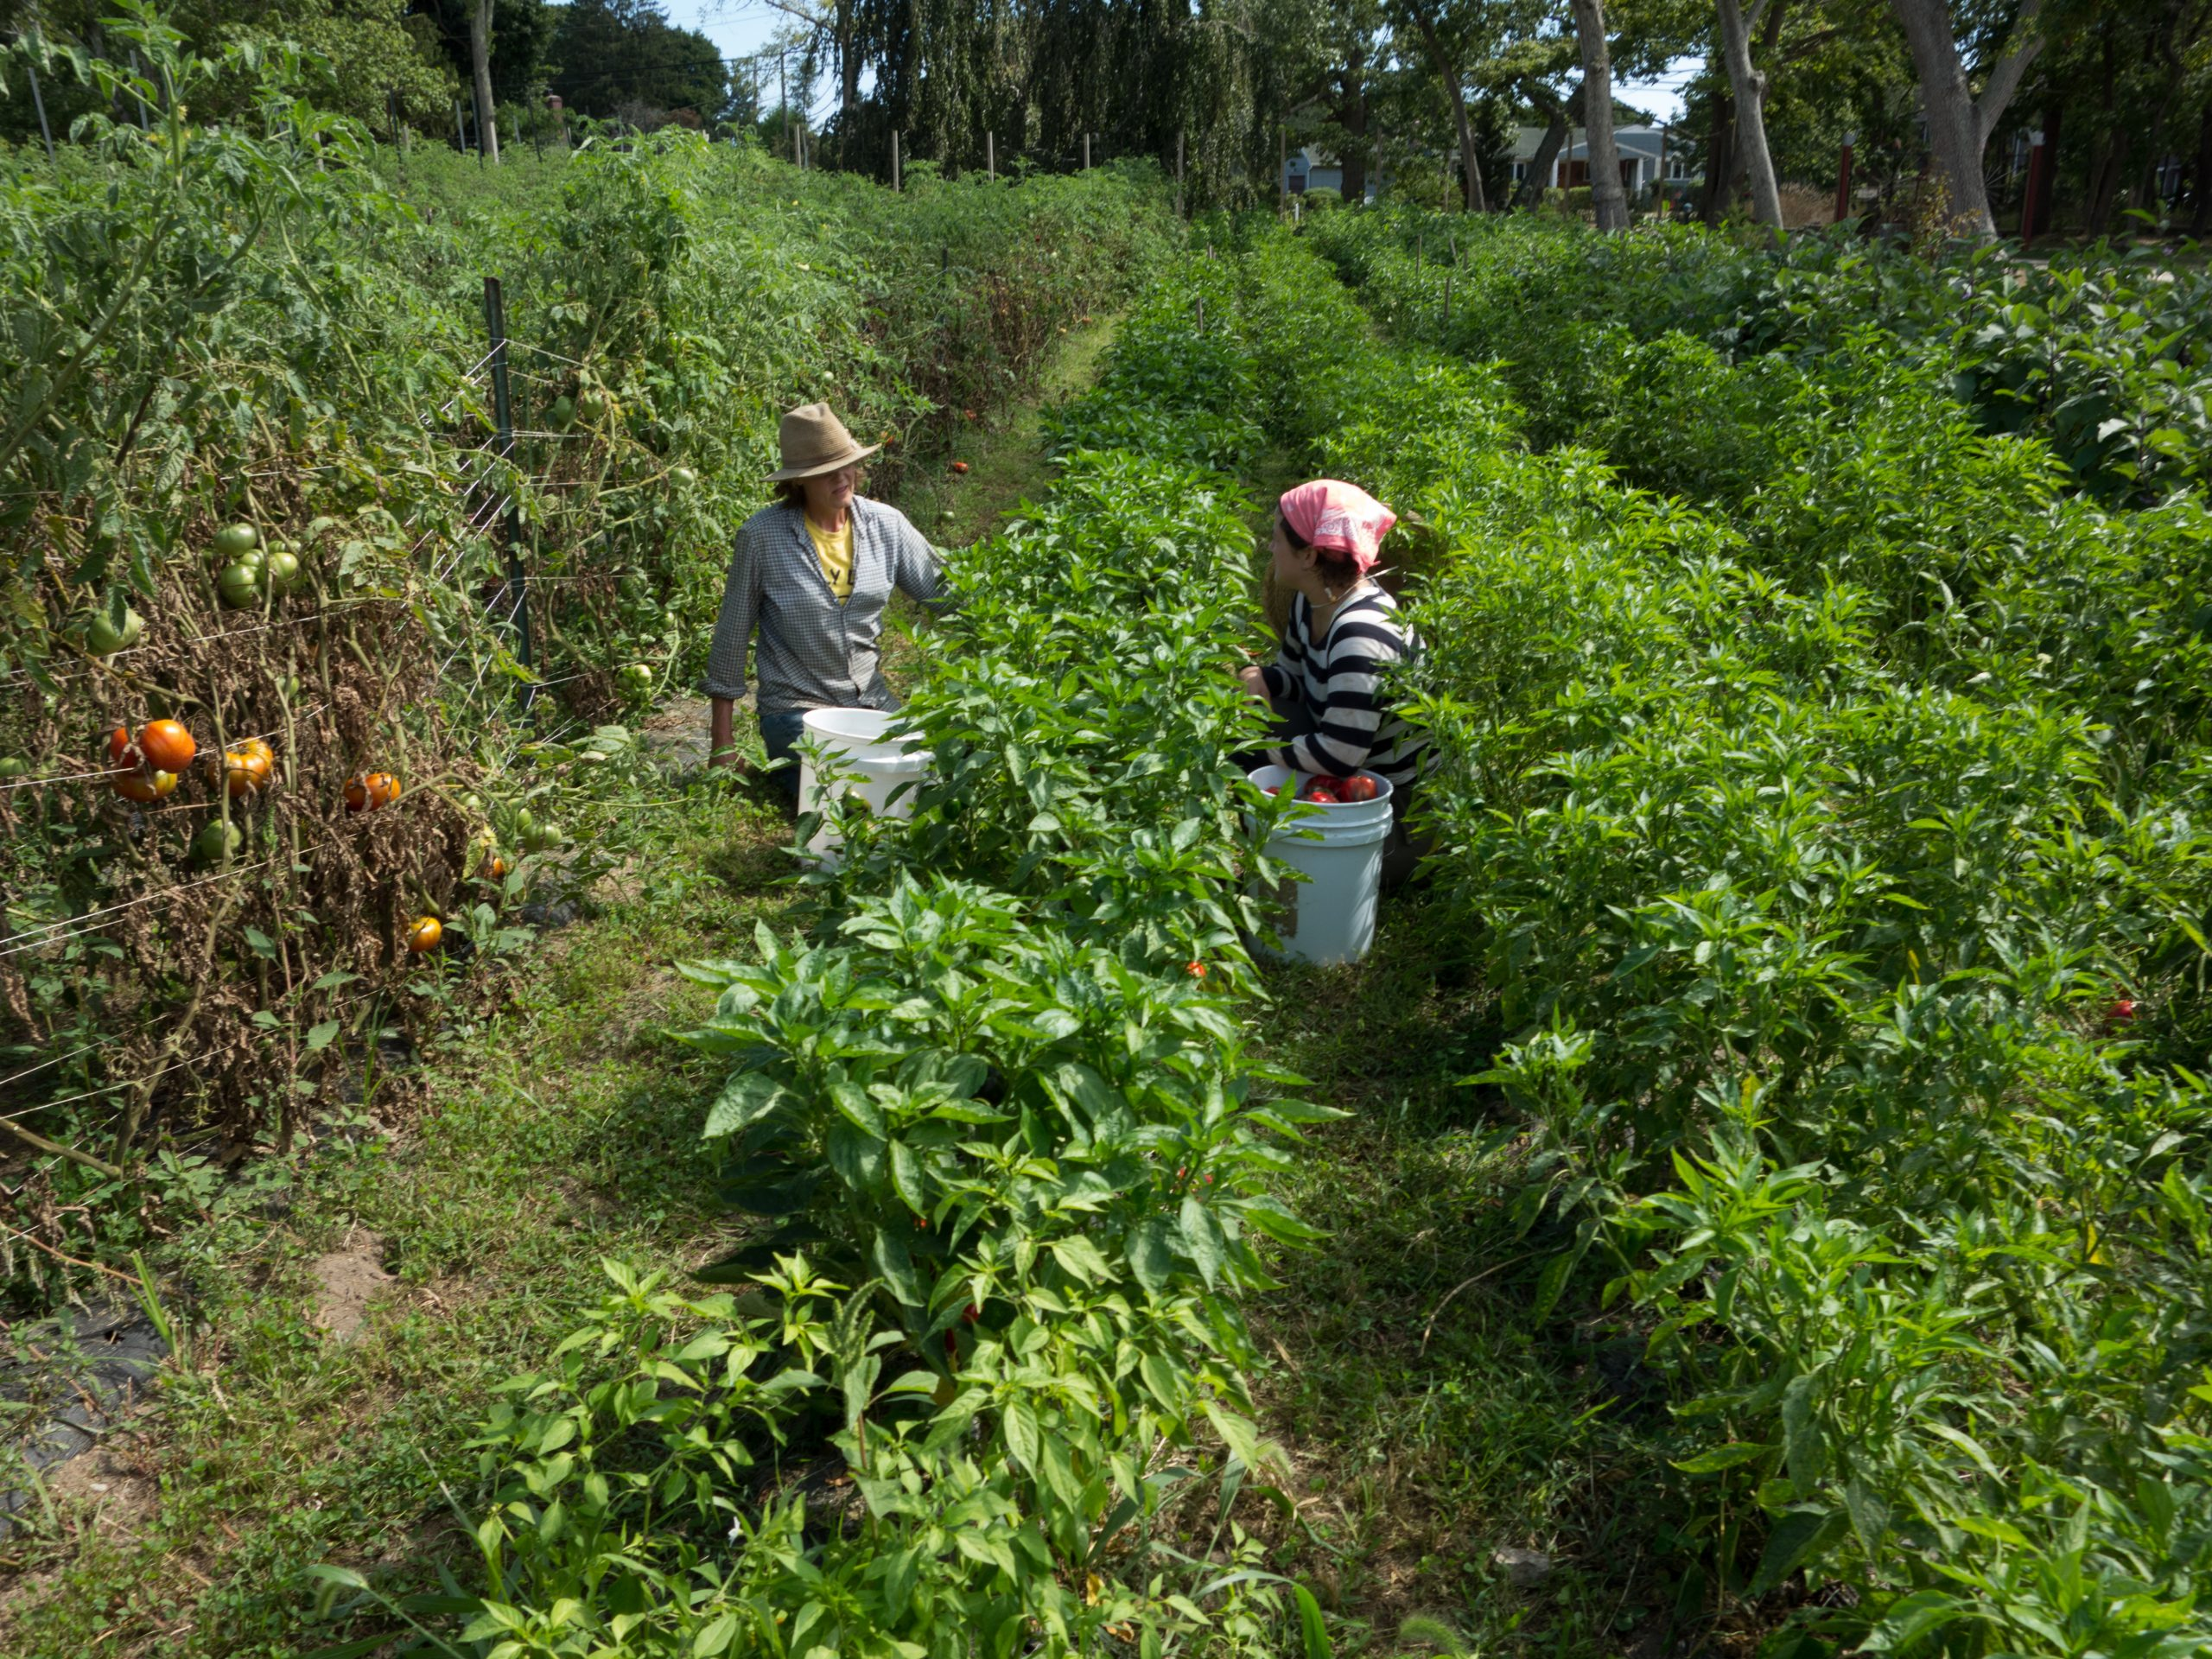 Patty and chef Mary Attea harvesting